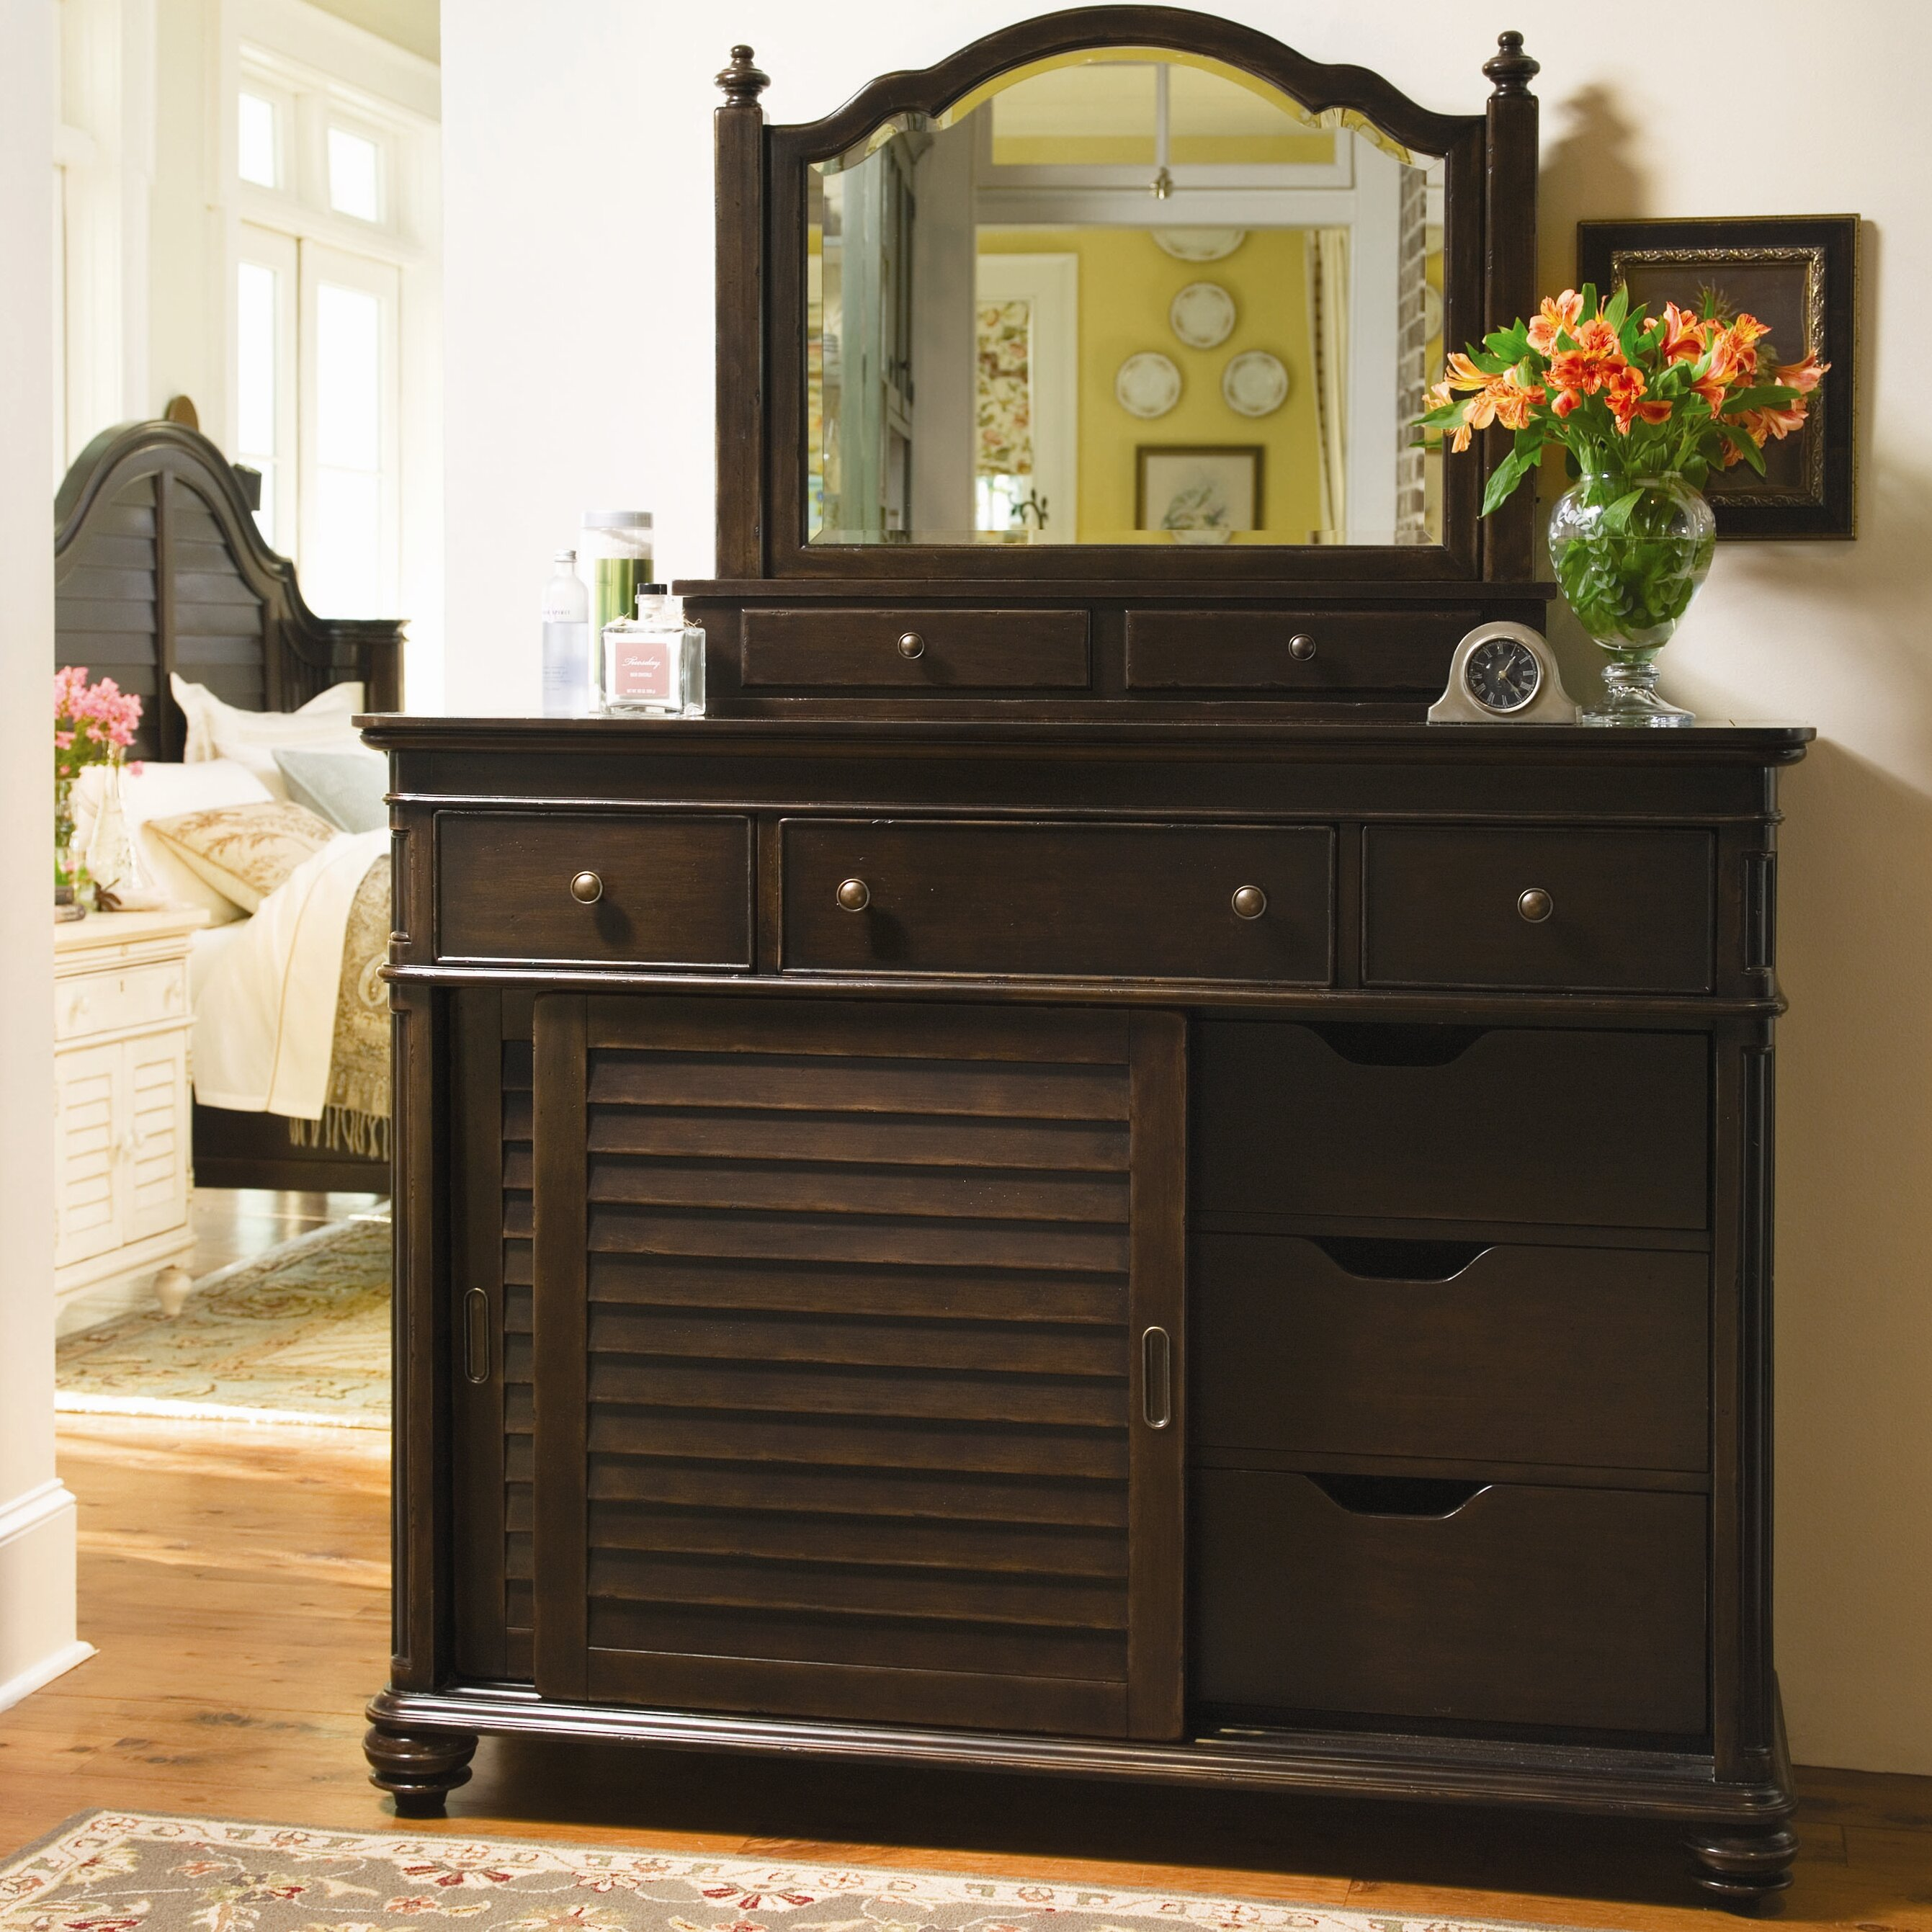 Paula Deen Bedroom Furniture Collection Steel Magnolia Paula Deen Home The Bag Ladys 6 Drawer Combo Dresser With Mirror